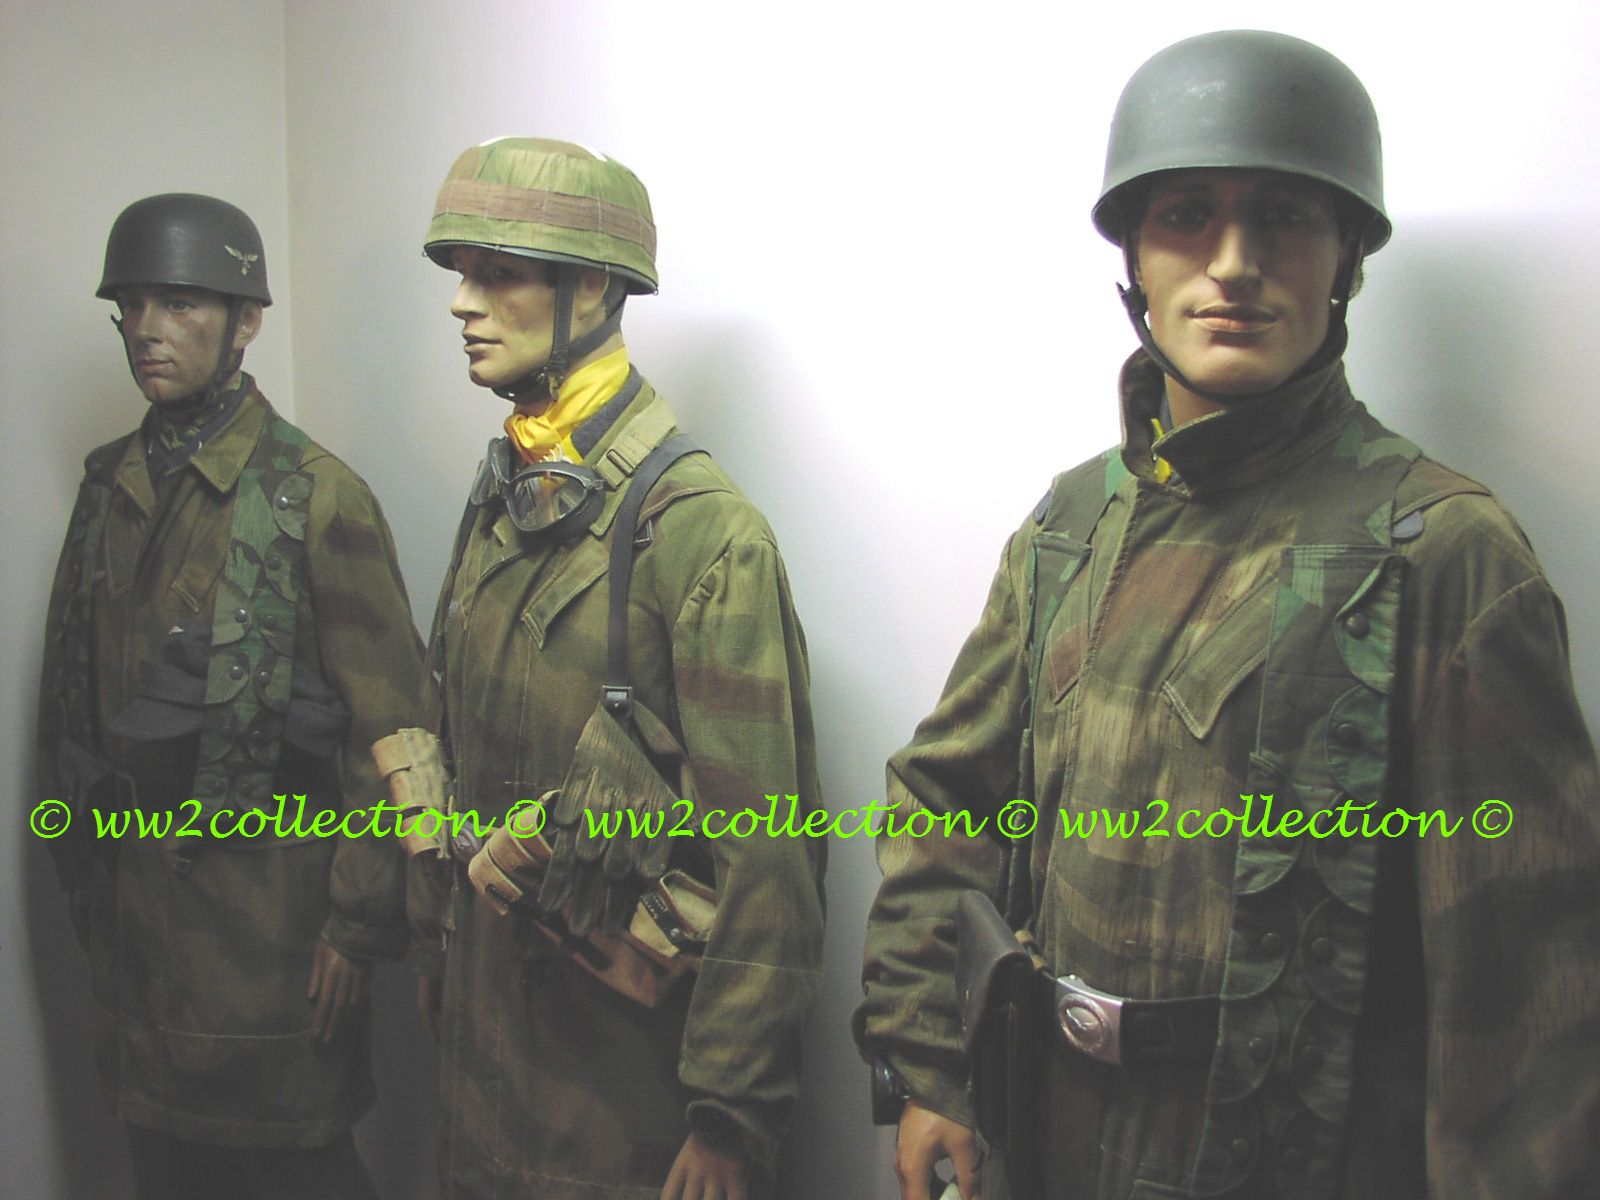 WW2 German Fallschirmjäger Group uniformed mannequins